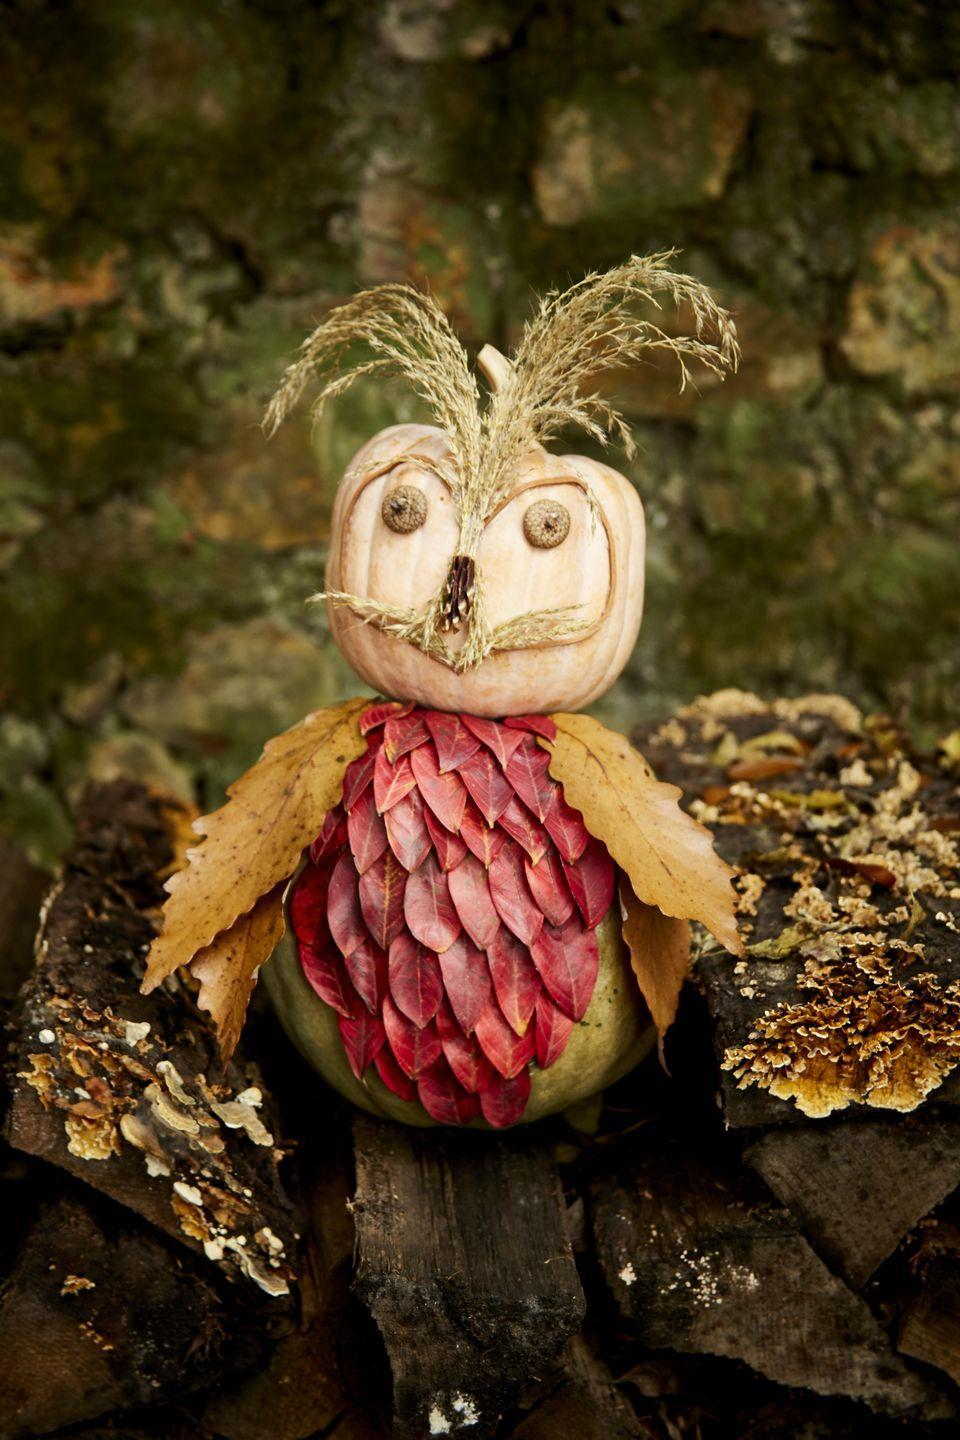 <p>Send the little ones on a trip around the yard to gather materials and help them (hot glue is…hot!) make this sweet-faced feathered friend.</p><p><strong>To make:</strong> Gather small- and medium-sized leaves, acorn caps, grasses, and pinecones from the yard. Glue small leaves on the front of a small oblong pumpkin, overlapping them slightly, to create feathers. Glue four larger leaves on either side, overlapping them, to create wings. Attach a piece of thin leather string with hot glue to a small acorn squash to create the outline of the face. Pull apart a pinecone and use the individual scales to create the nose, attaching them with hot glue. Attach acorn caps to create eyes and grass to create ears and whiskers.</p>